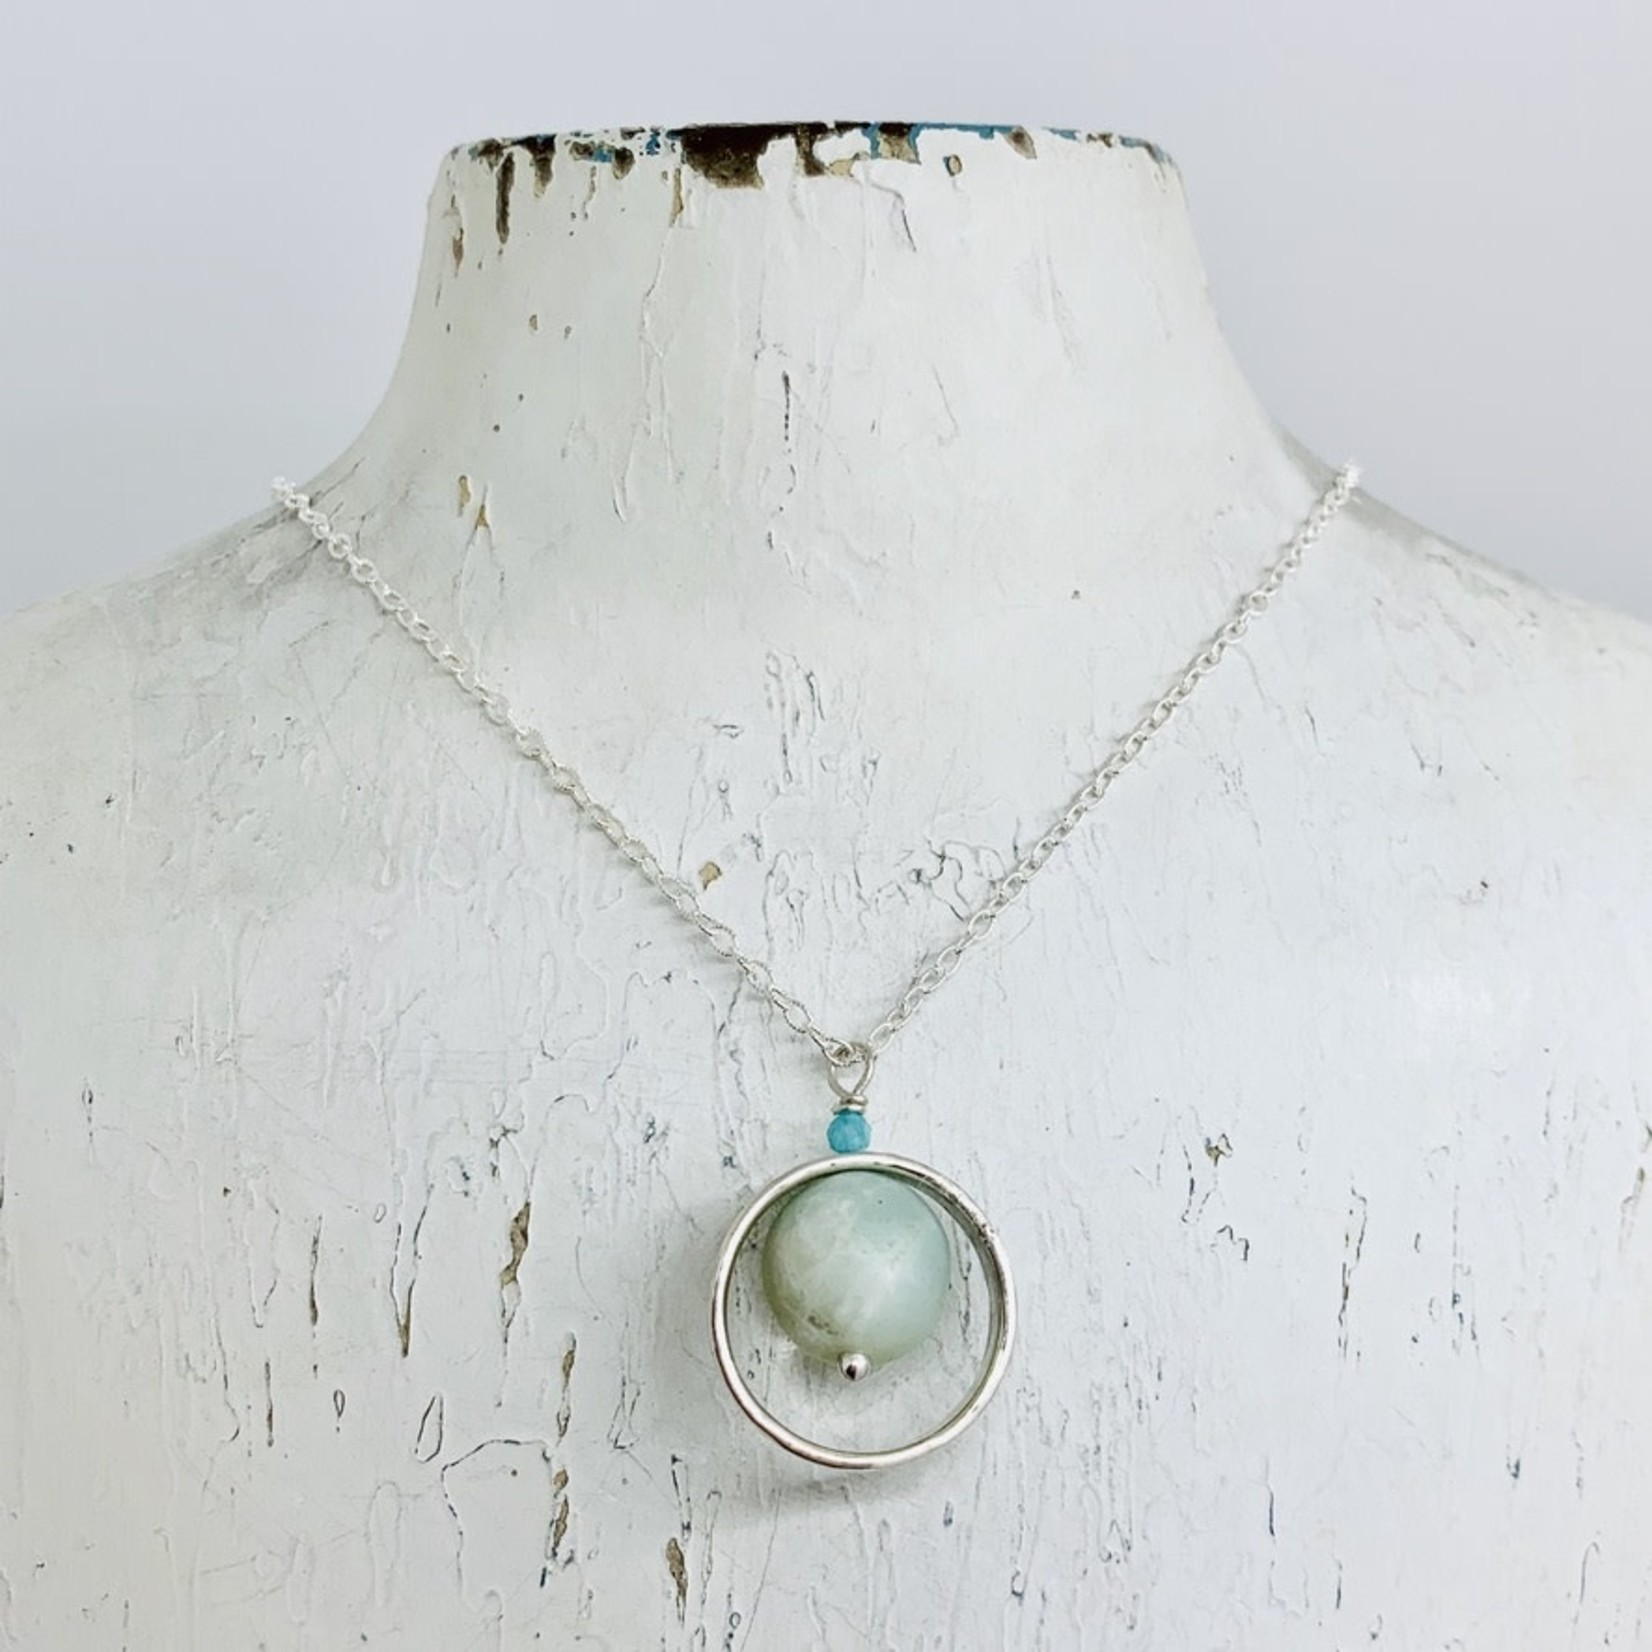 Handmade necklace with hammered ring, round matte amazonite